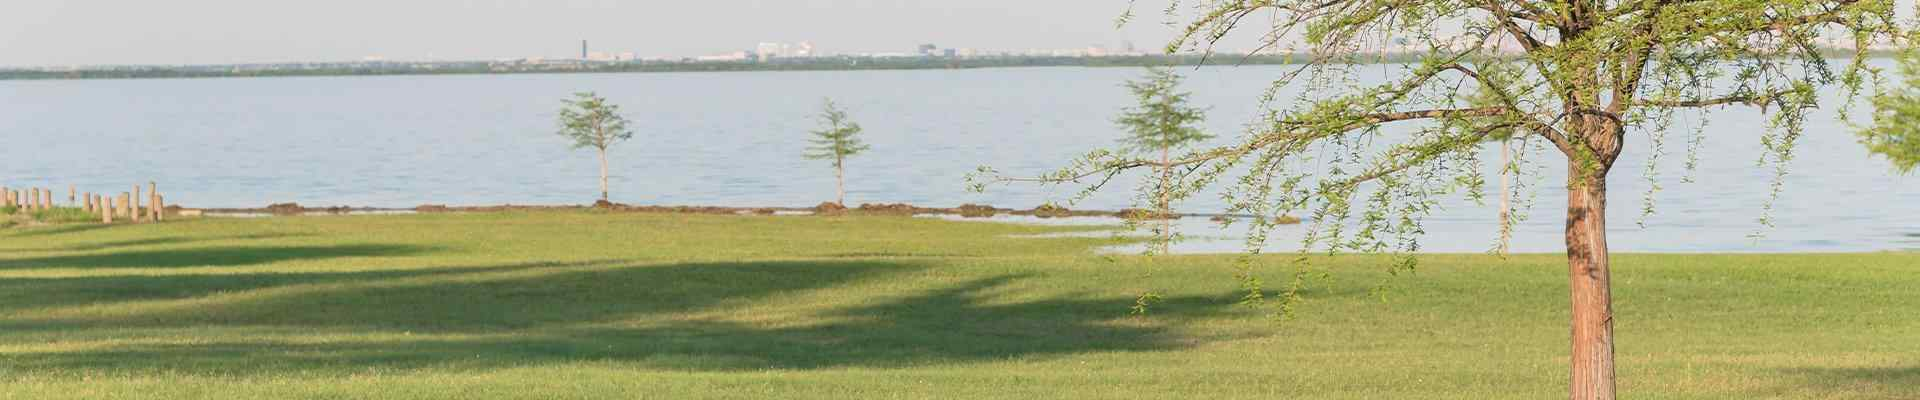 view of a lake in a park in lewisville texas